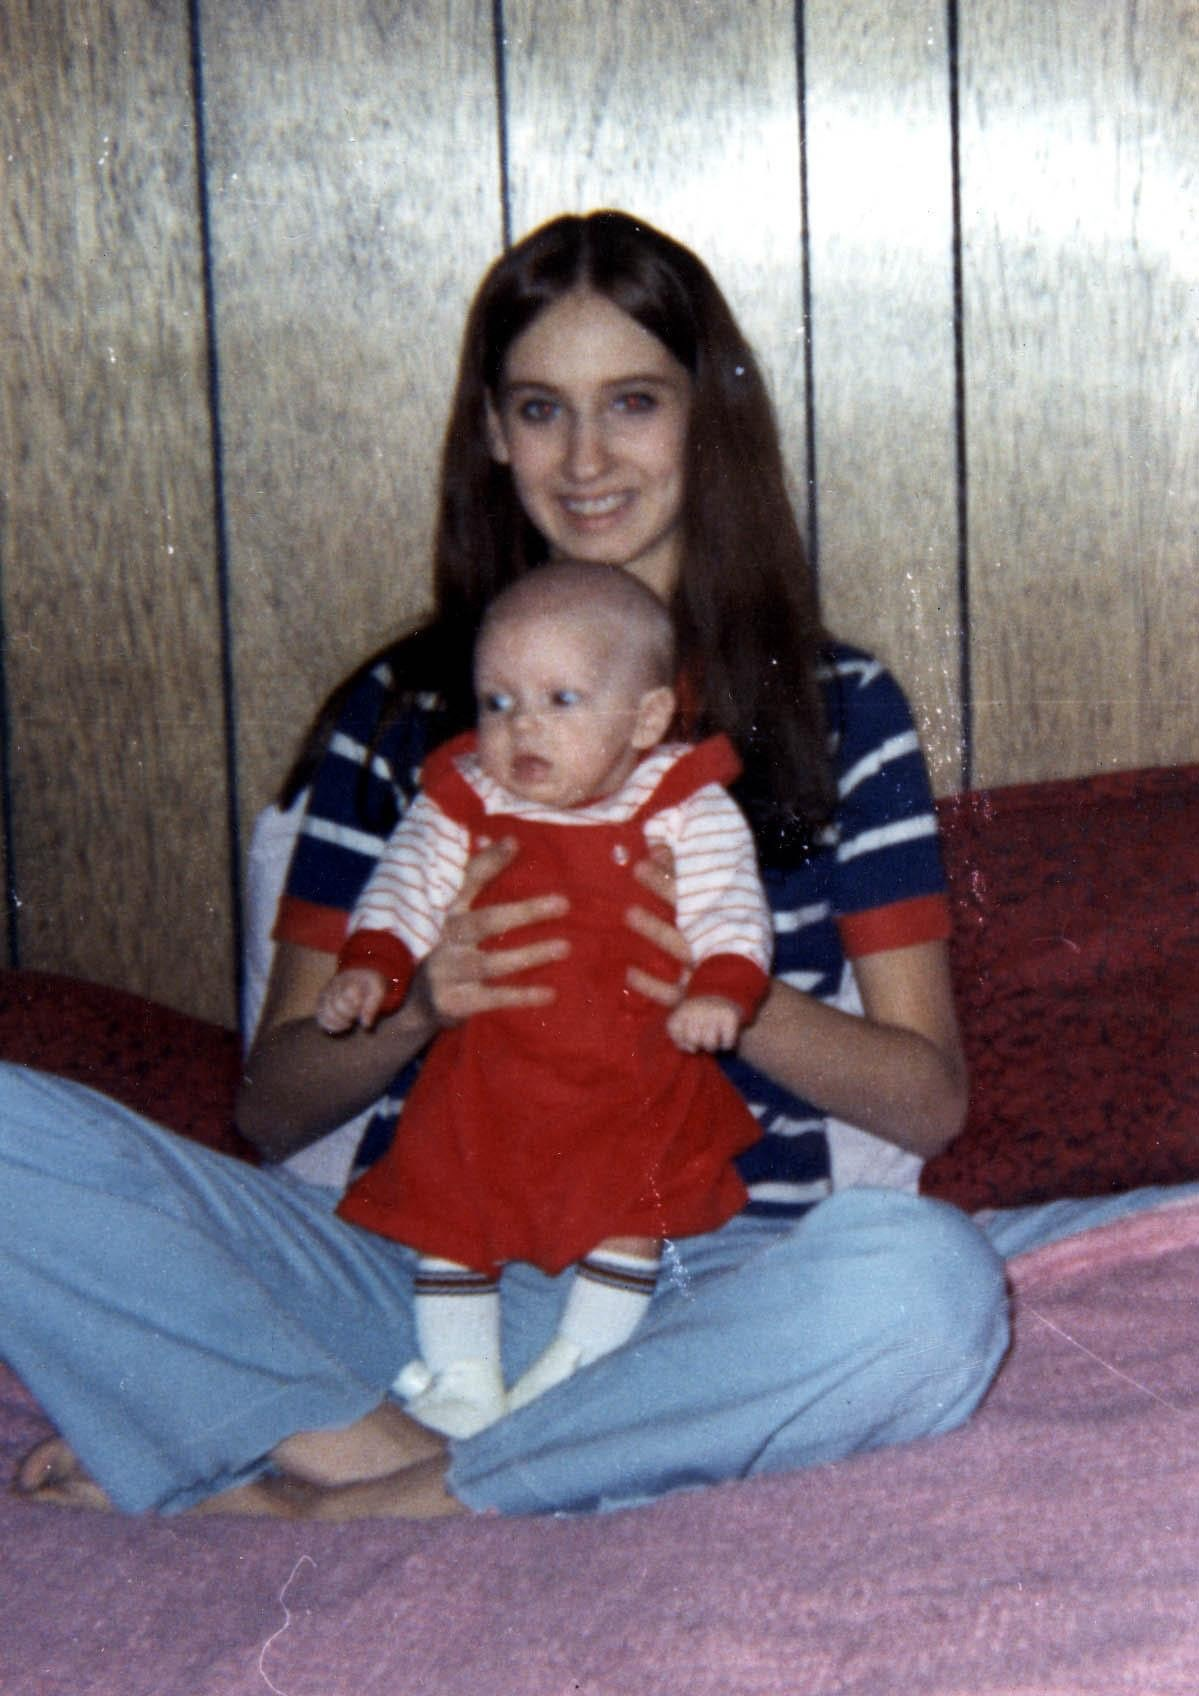 Rapper Eminem before he was famous as a baby with his mother Deborah Mathers circa 1972.